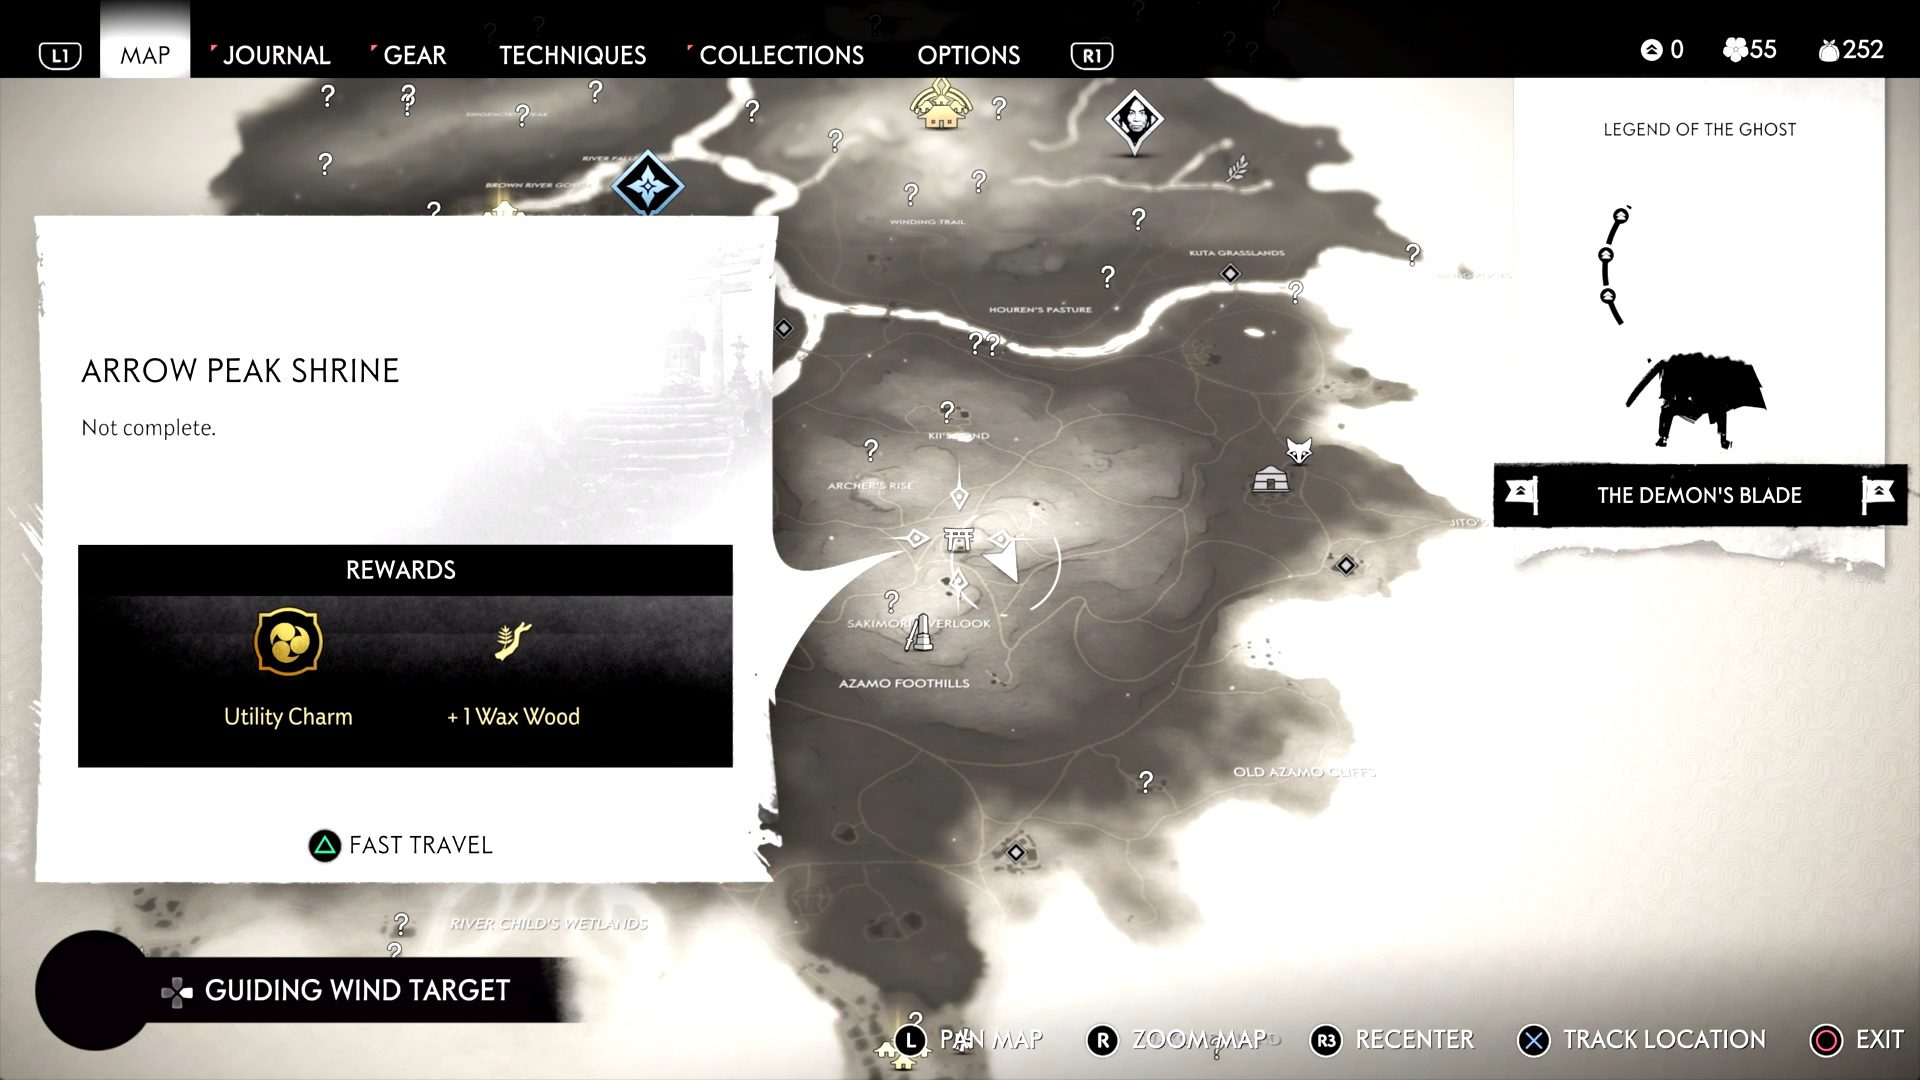 Ghost of Tsushima Charm of Inari Location